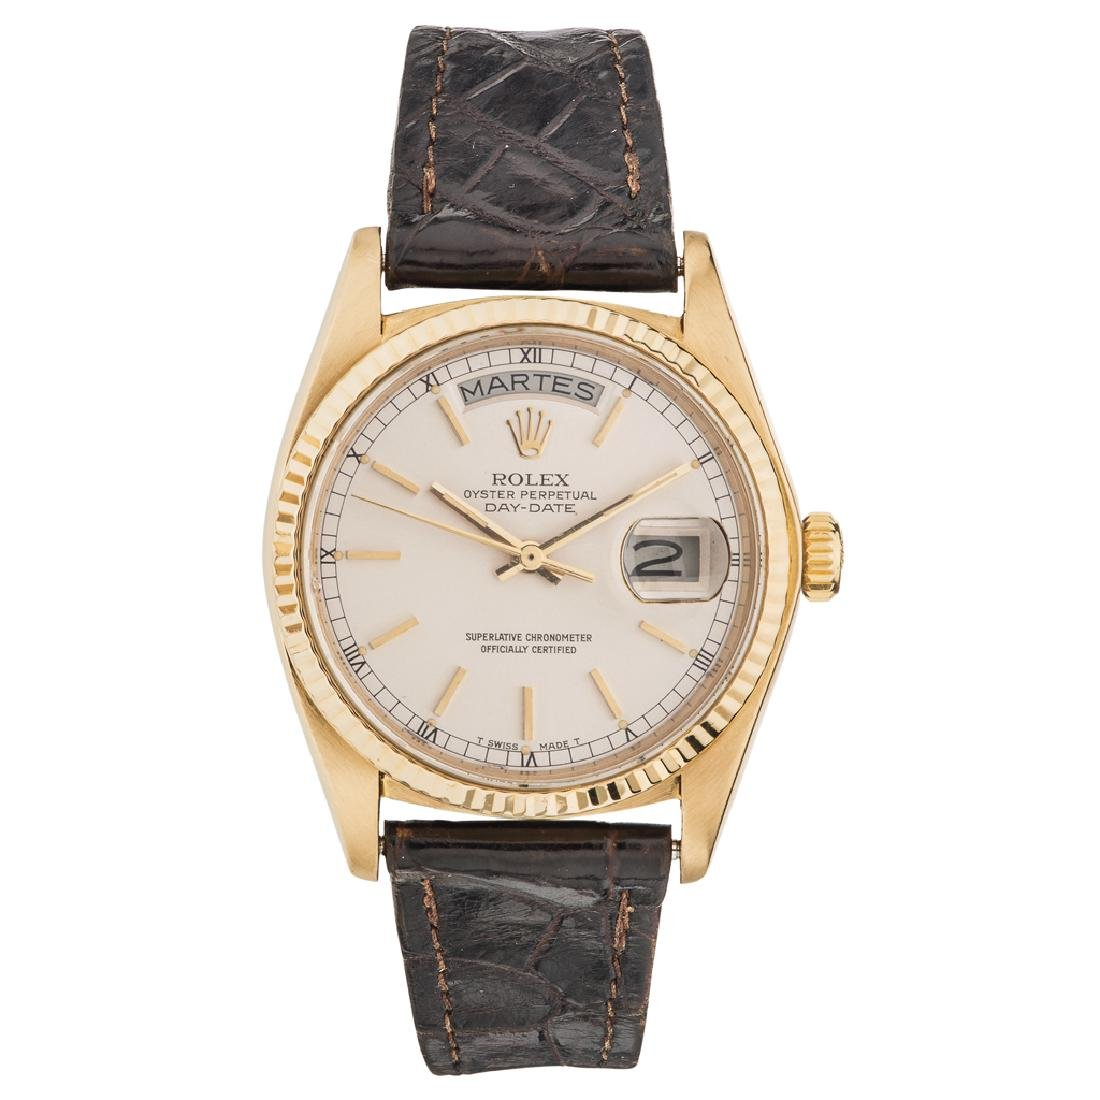 ROLEX OYSTER PERPETUAL DAY - DATE WRISTWATCH. 18K